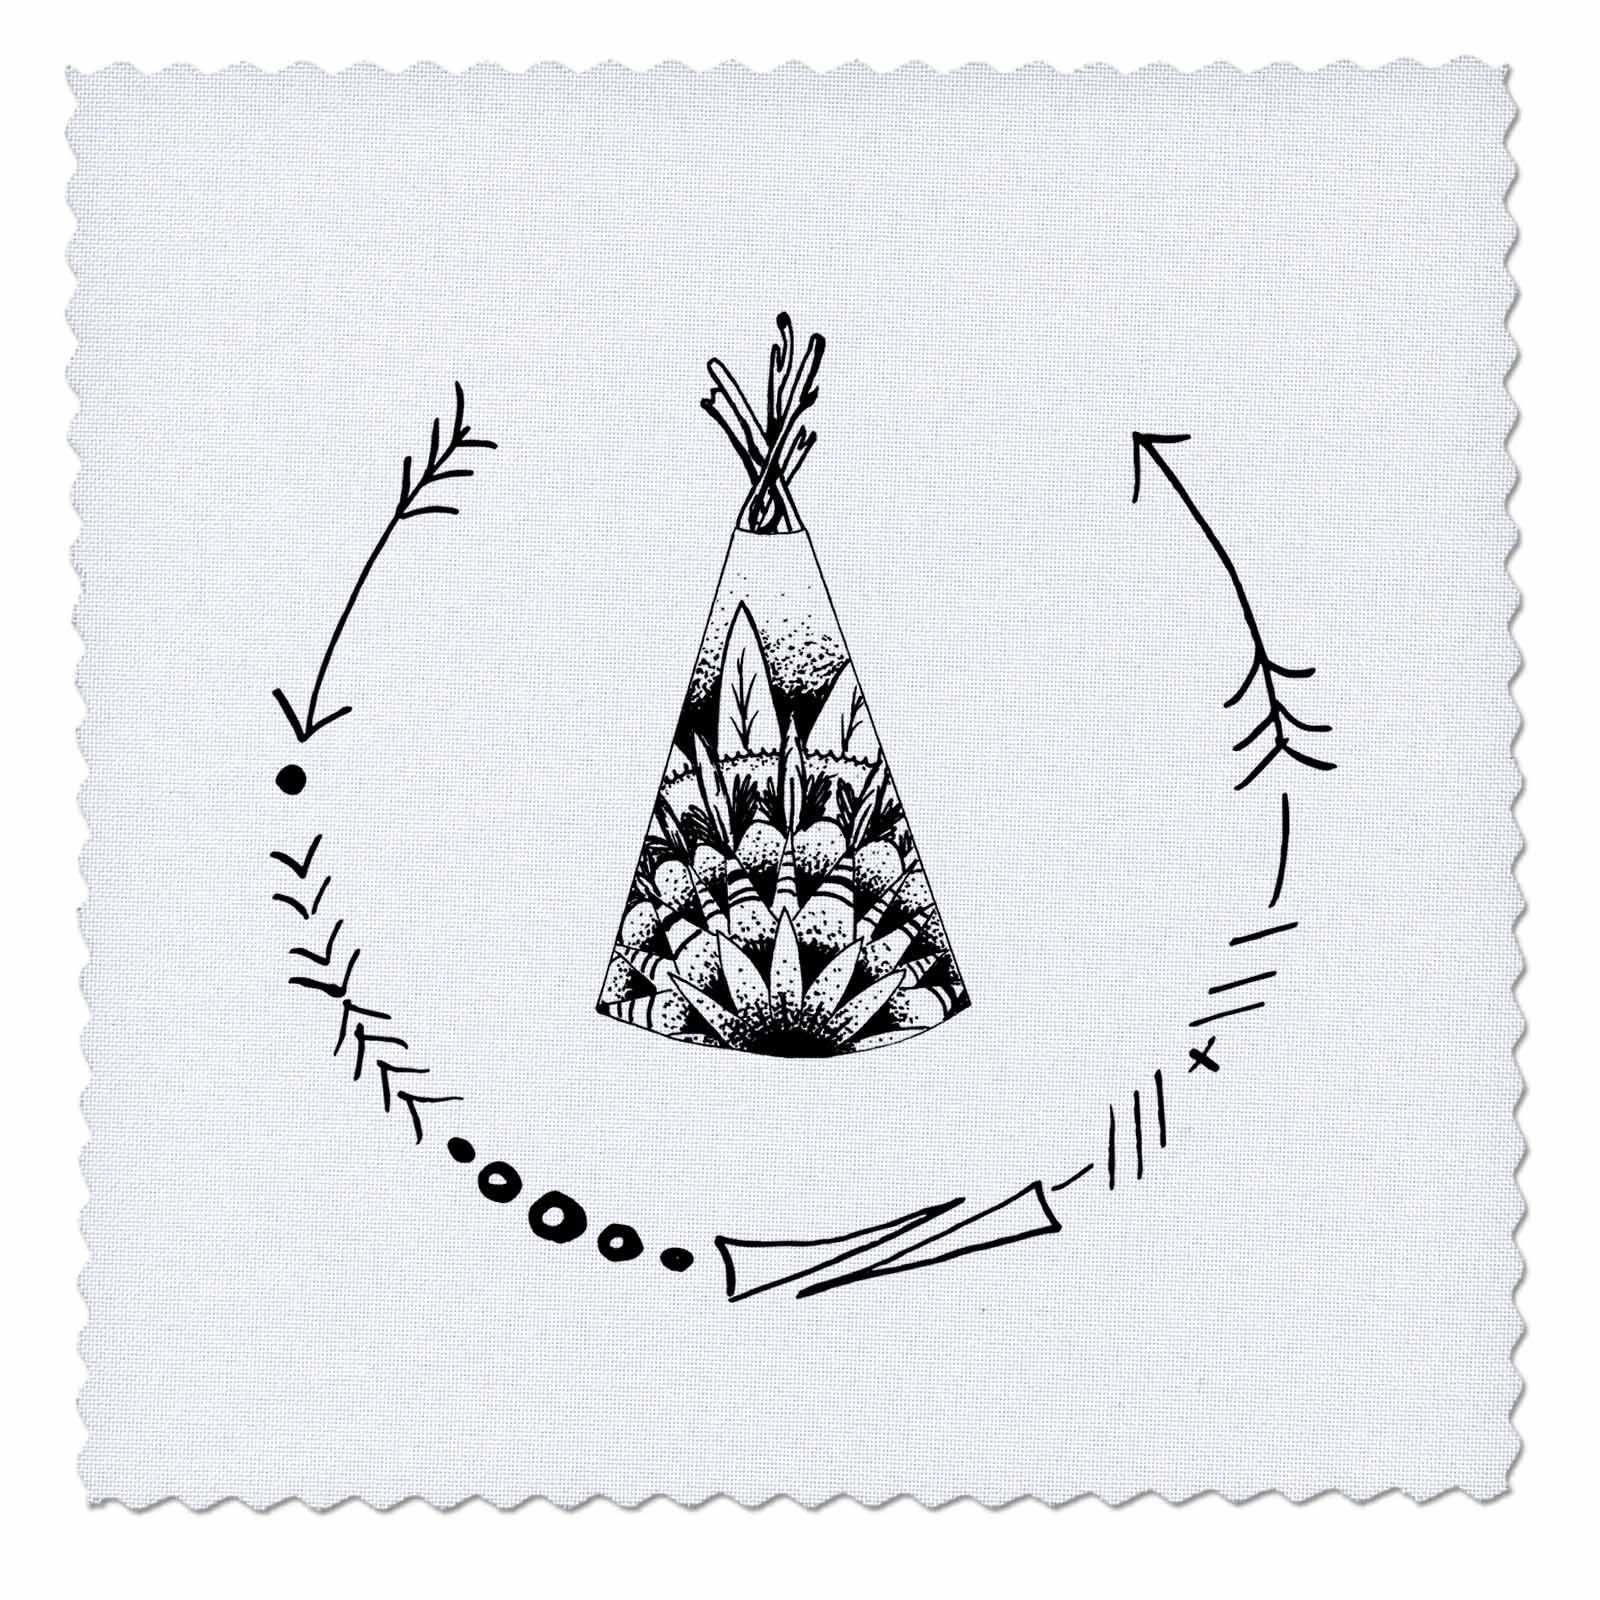 Amazon.com: TNMGraphics Old West - Teepee With Arrow Curved Frame ... : quilt square tattoo - Adamdwight.com